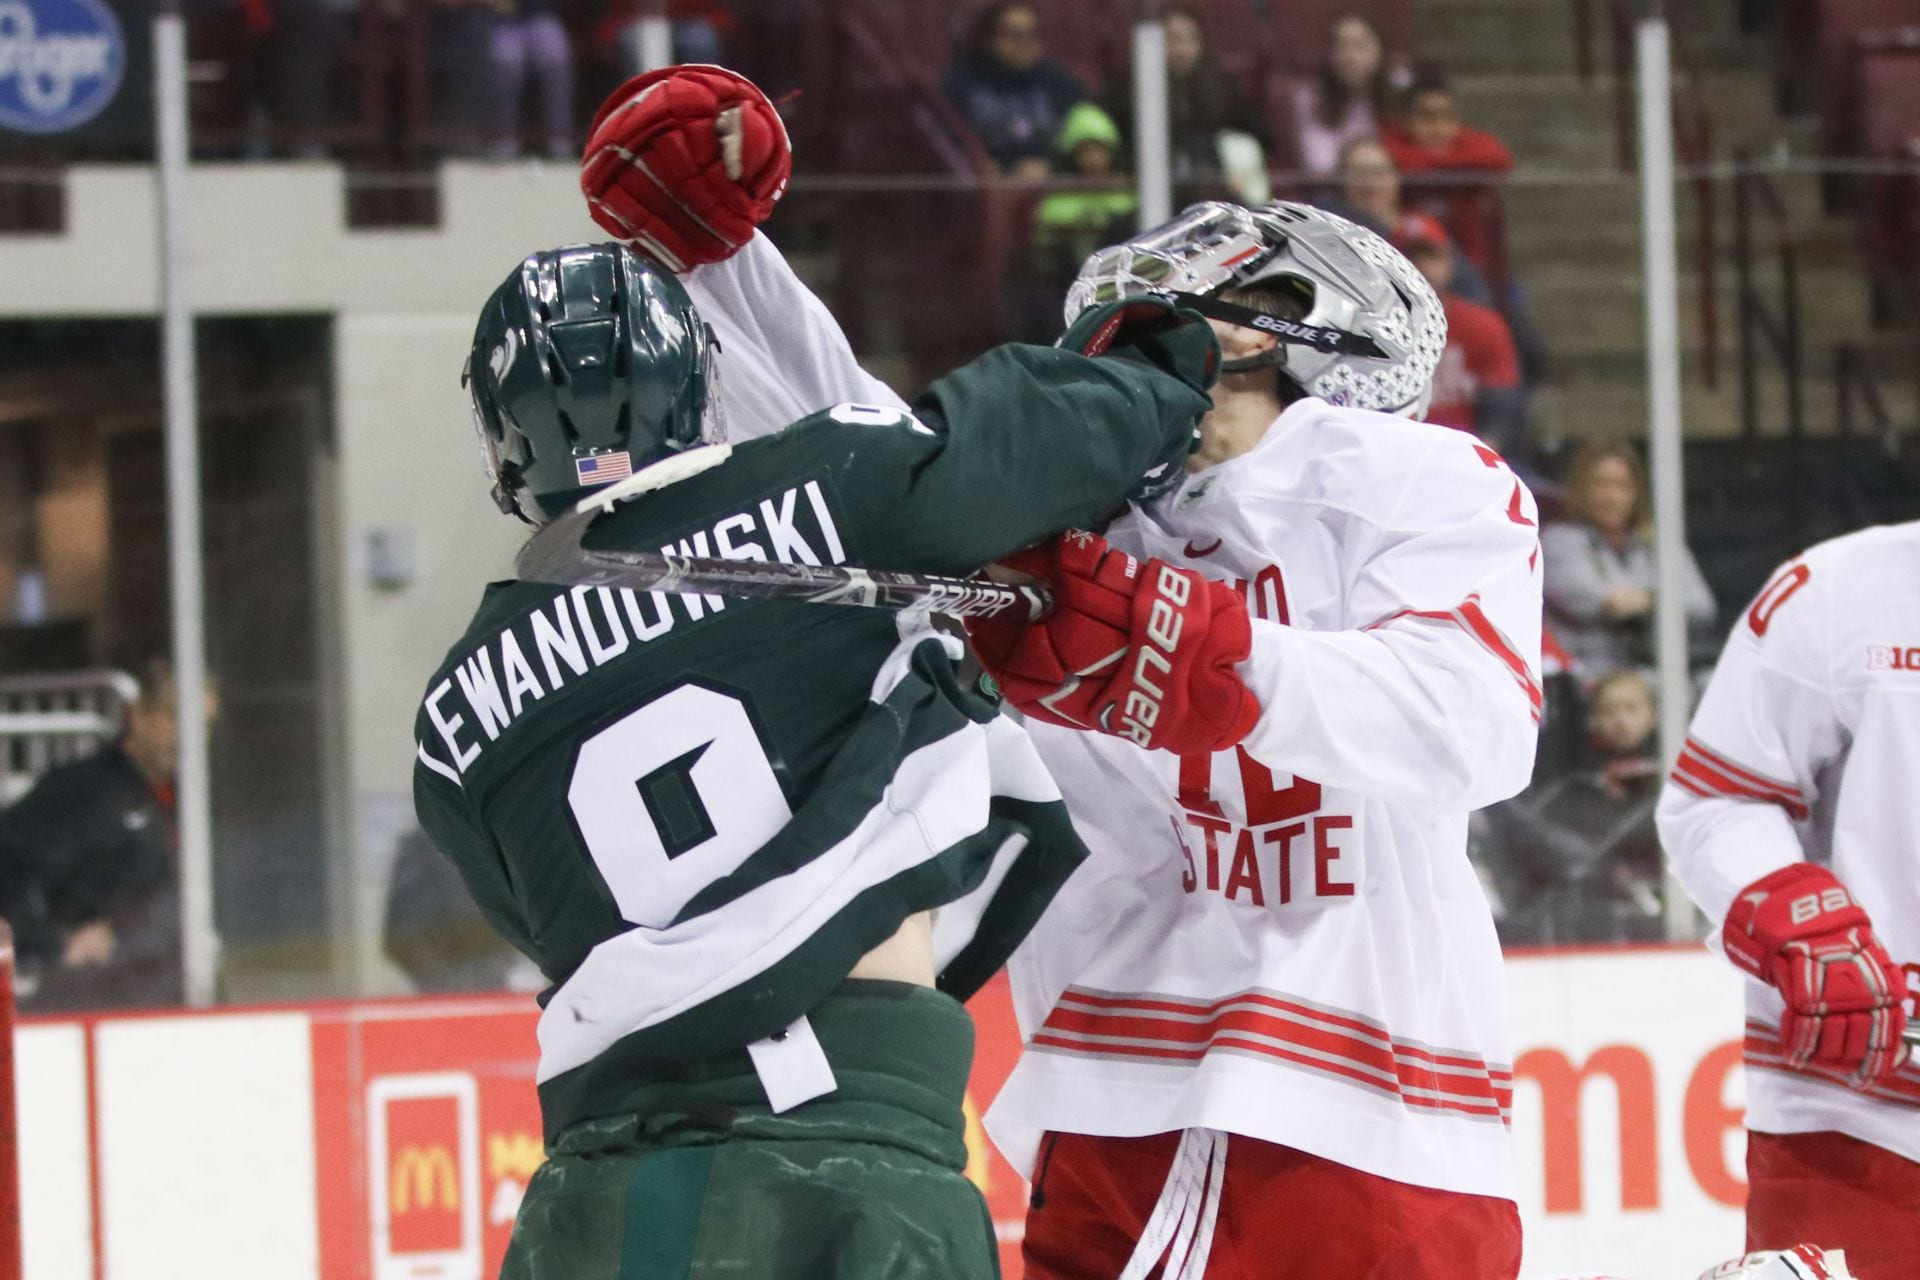 huge selection of cbec5 351e8 Men's Hockey: No. 7 Ohio State loses 3-2 against Michigan ...